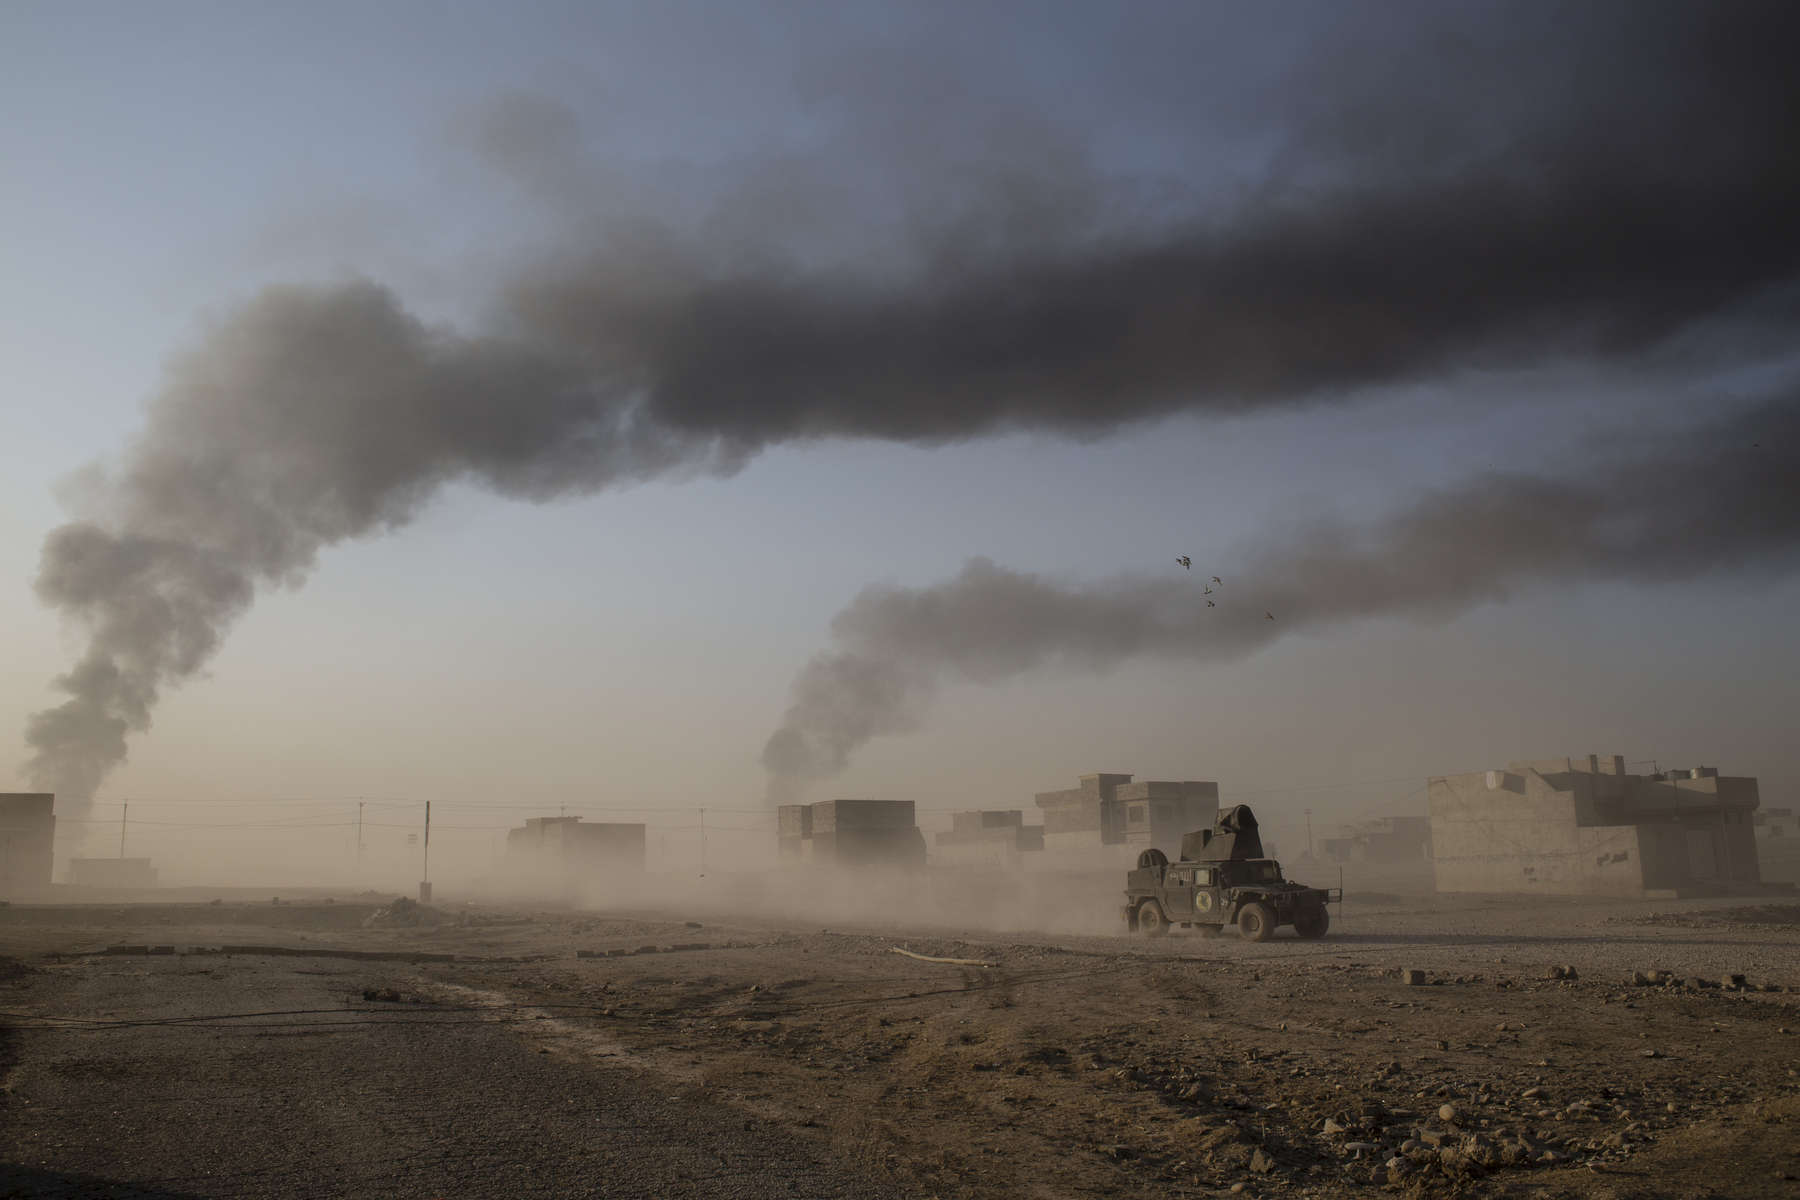 08/11/2016 -- Mosul, Iraq -- A smoke in the sky above Mosul.